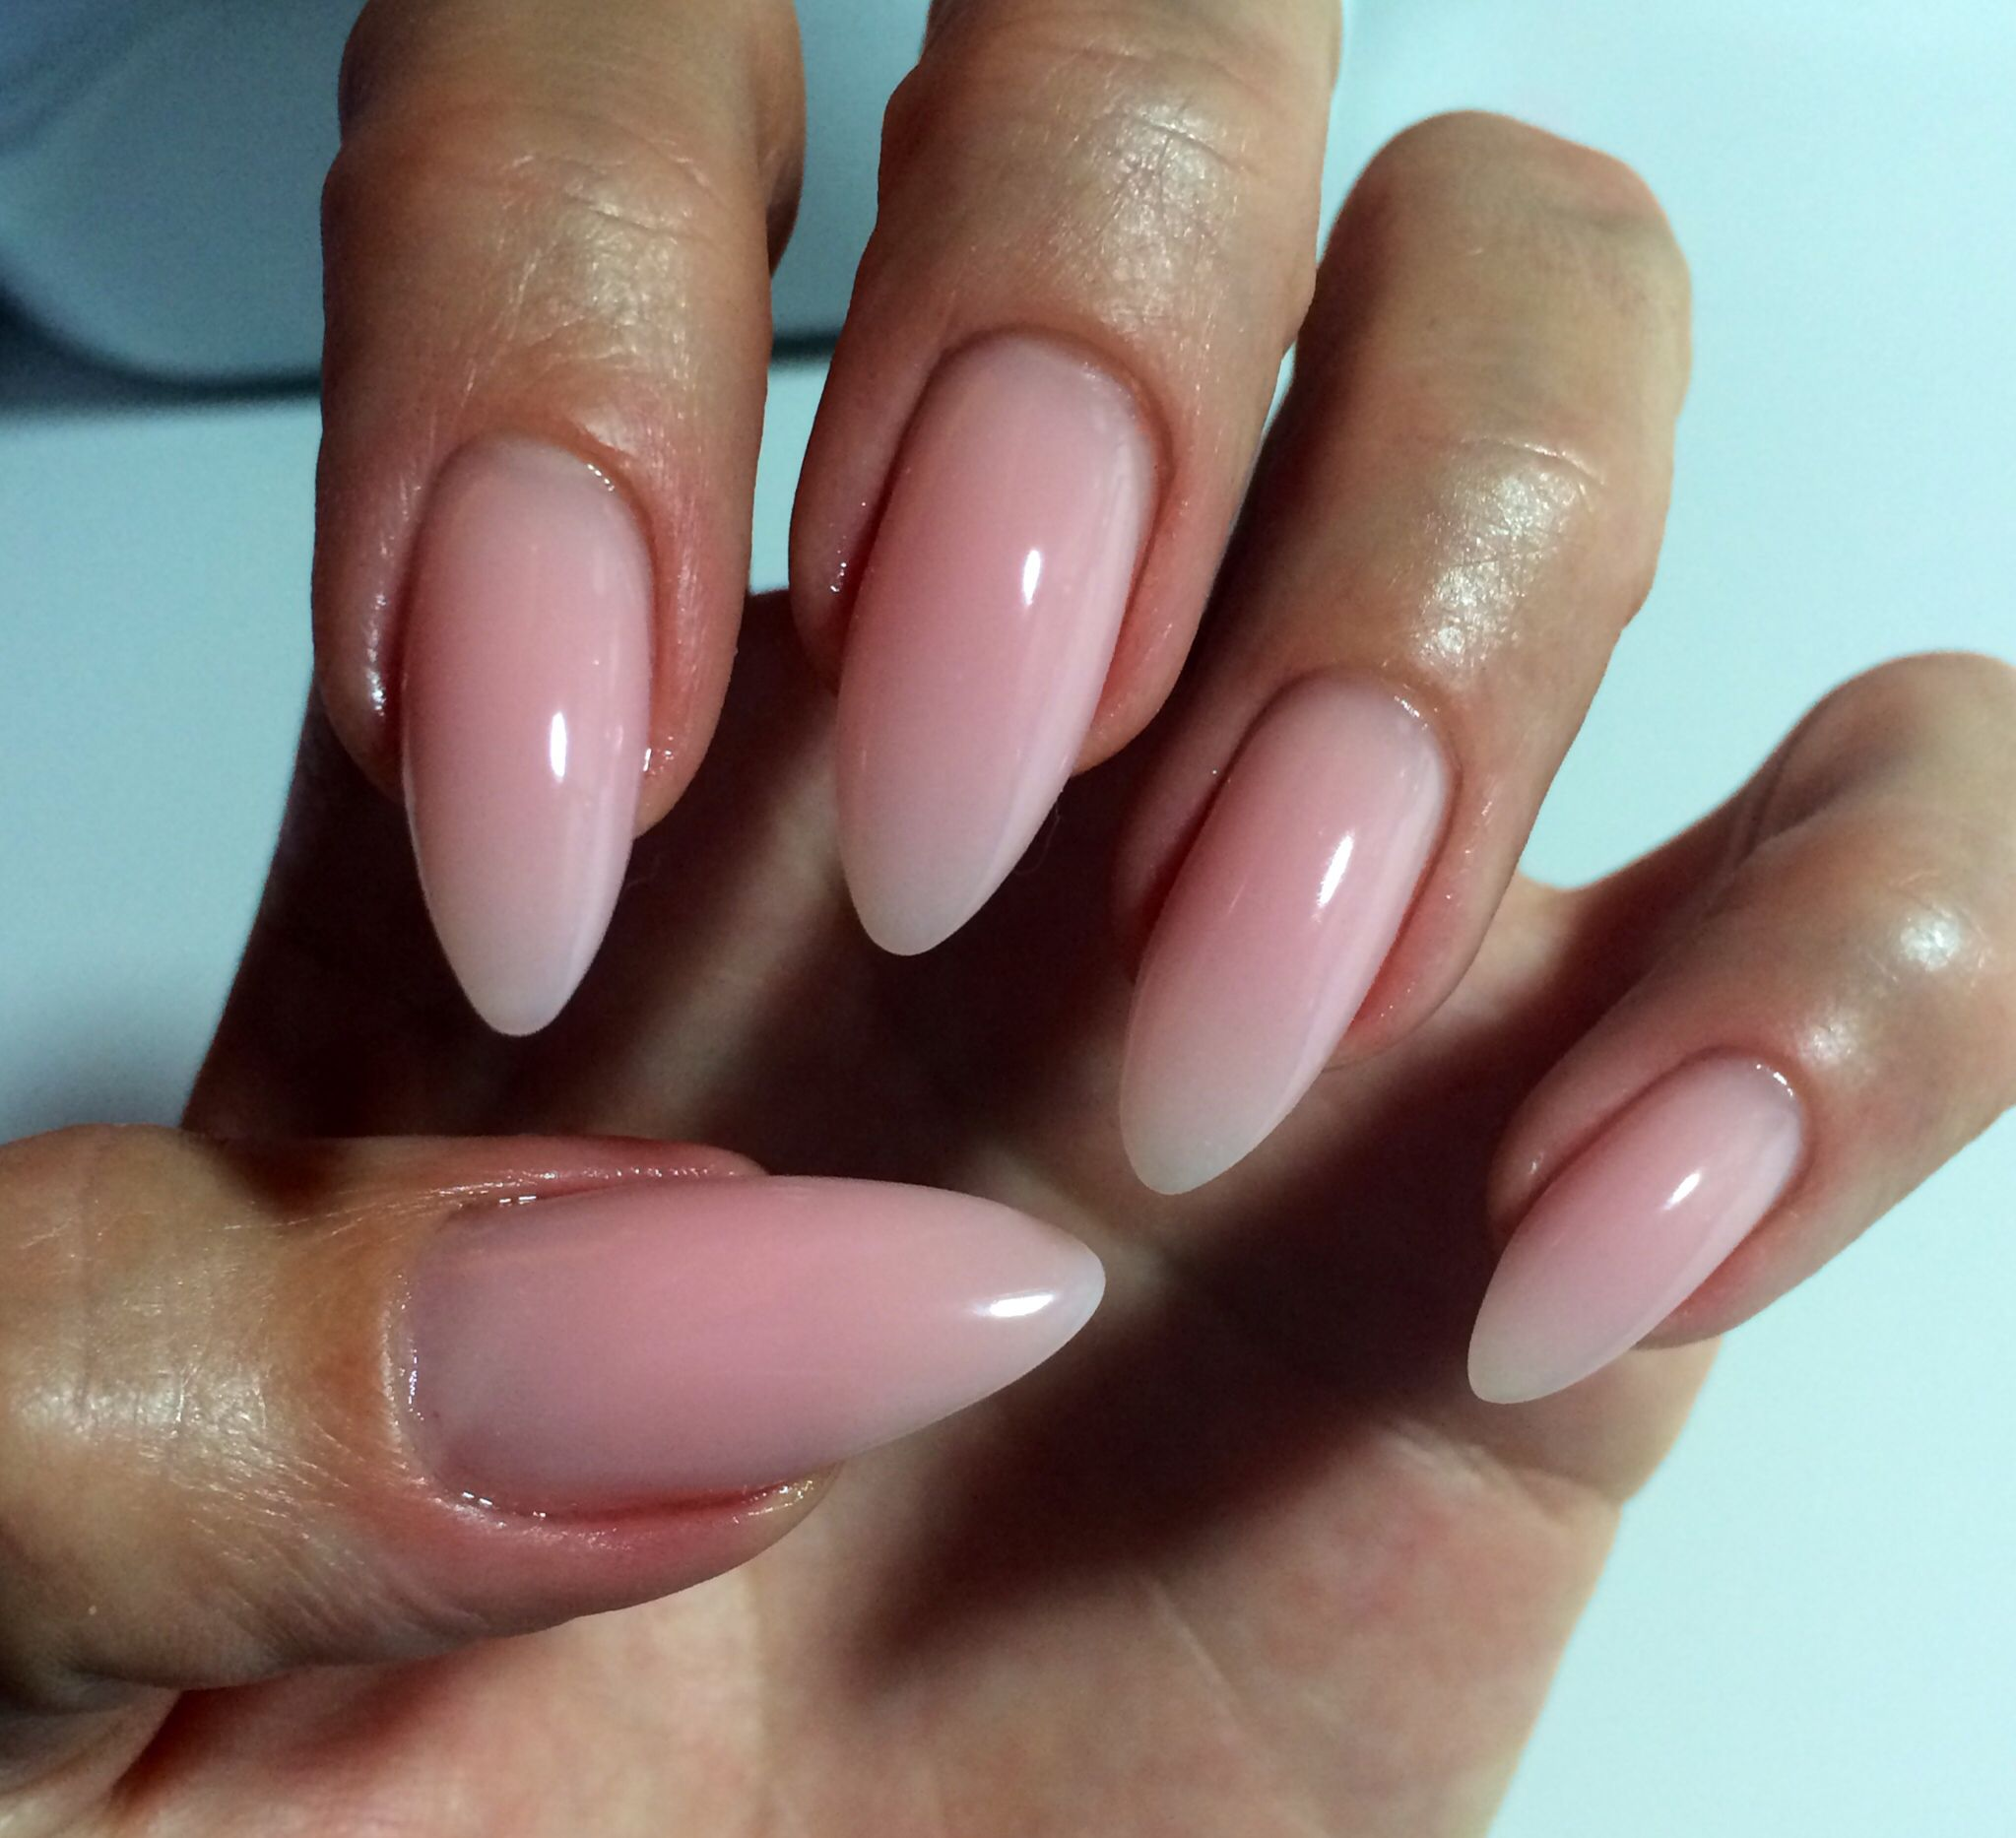 Pink Almond Nails Natural Gel Nail Design Stiletto Yes Now To Find A Tech Who Can Create This For Me